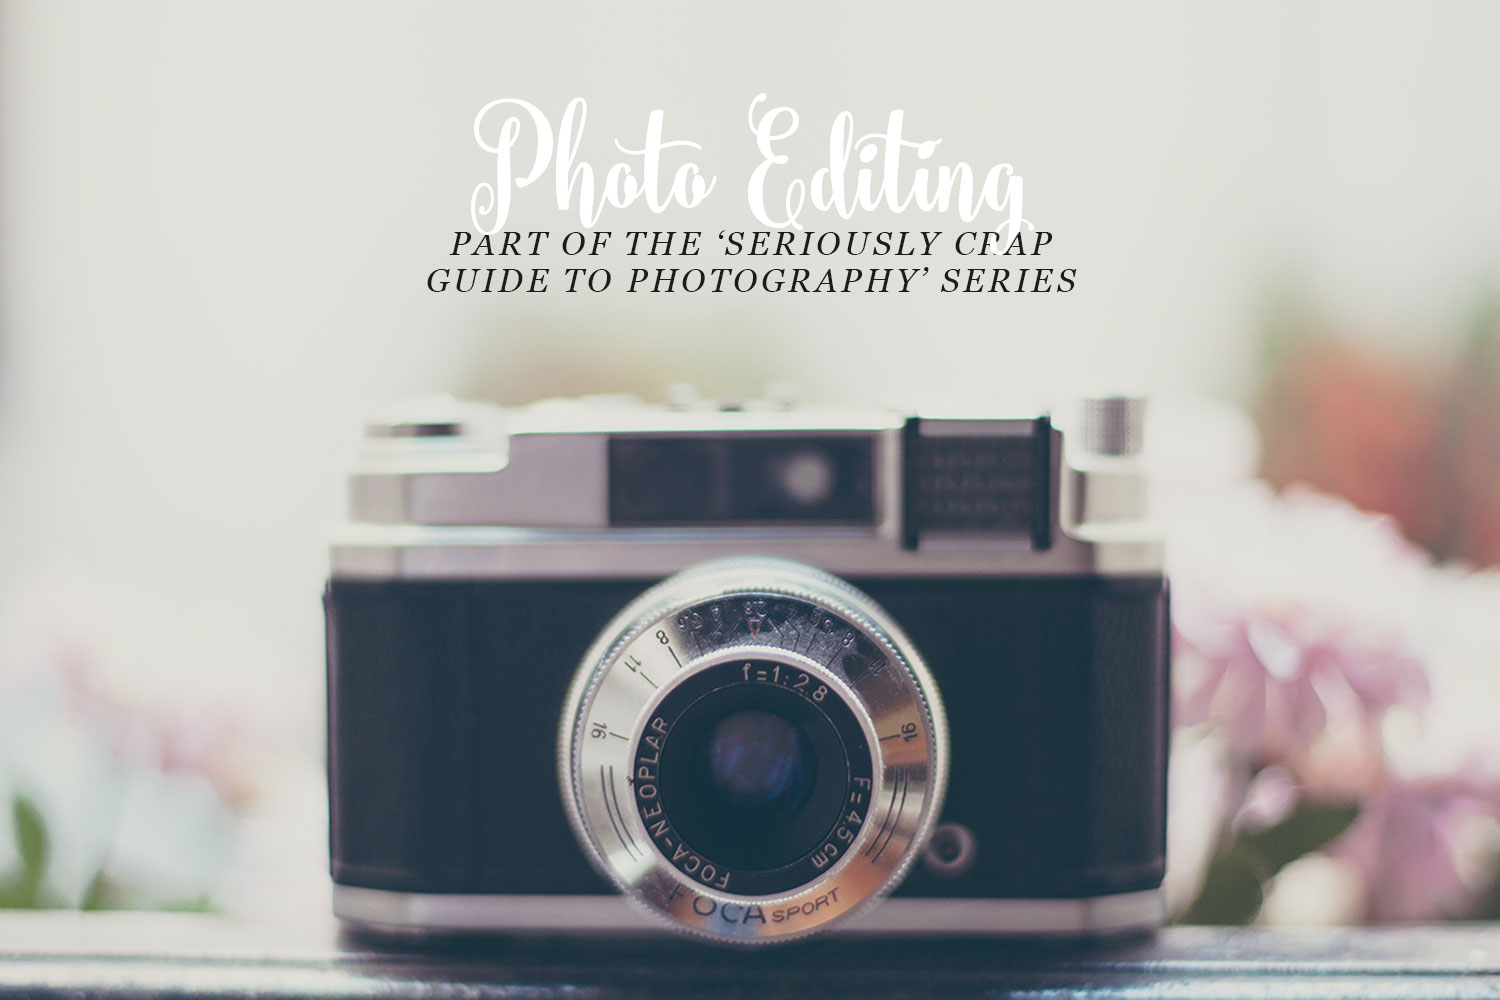 The 'Seriously Crap Guide to Photography' Series; Photo Editing Title